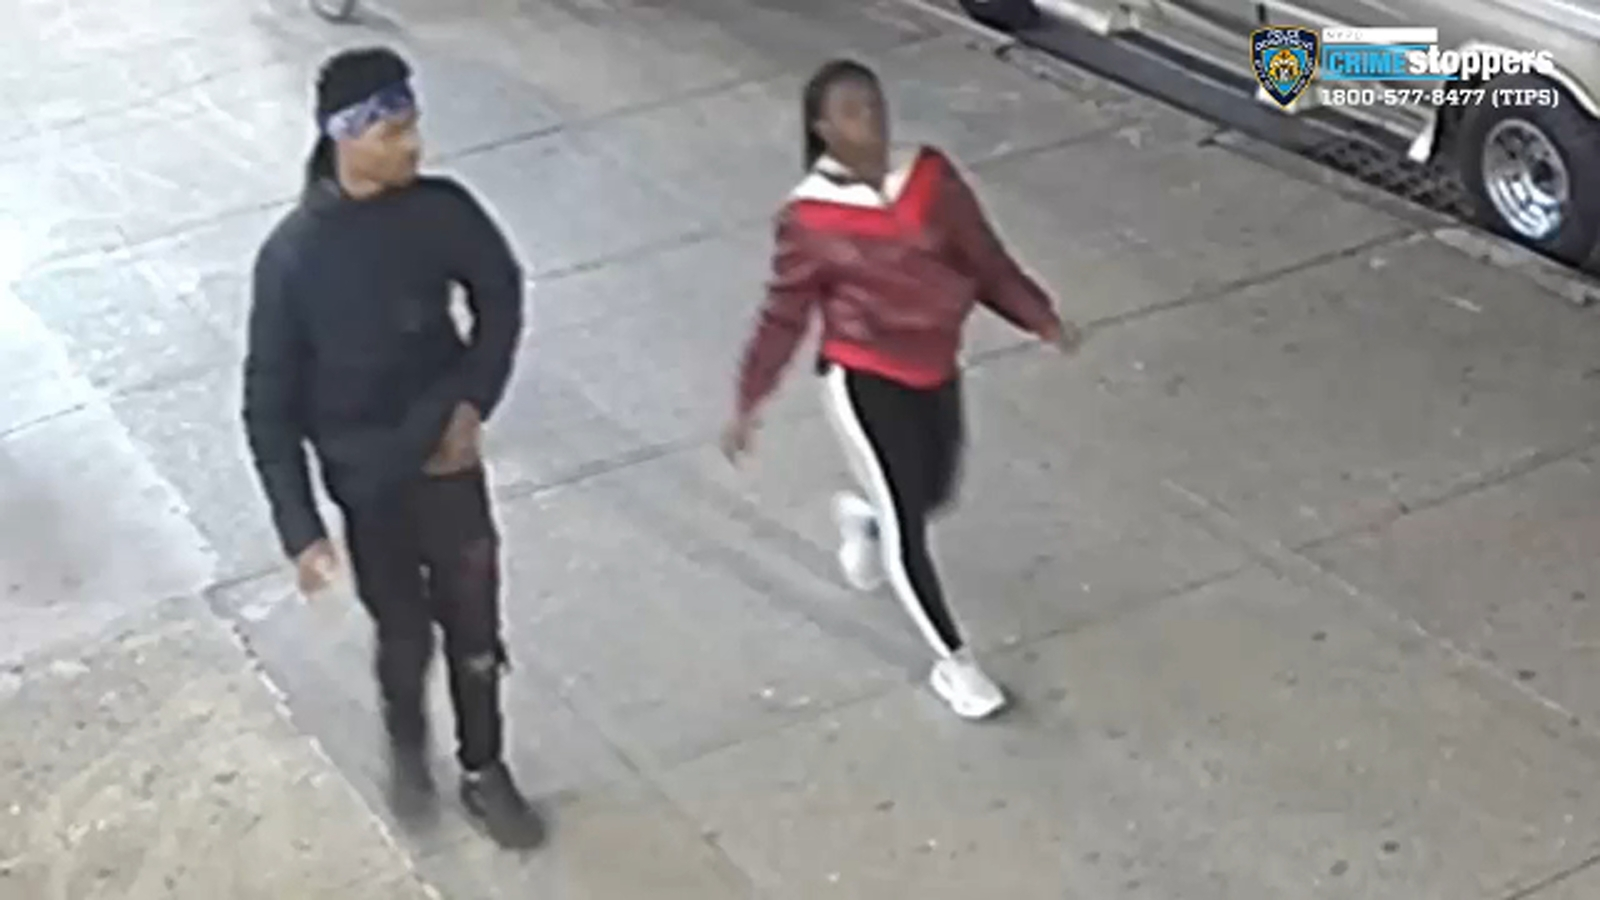 Bushwick Car Service >> Man and woman caught on camera punching victim in Bushwick ...